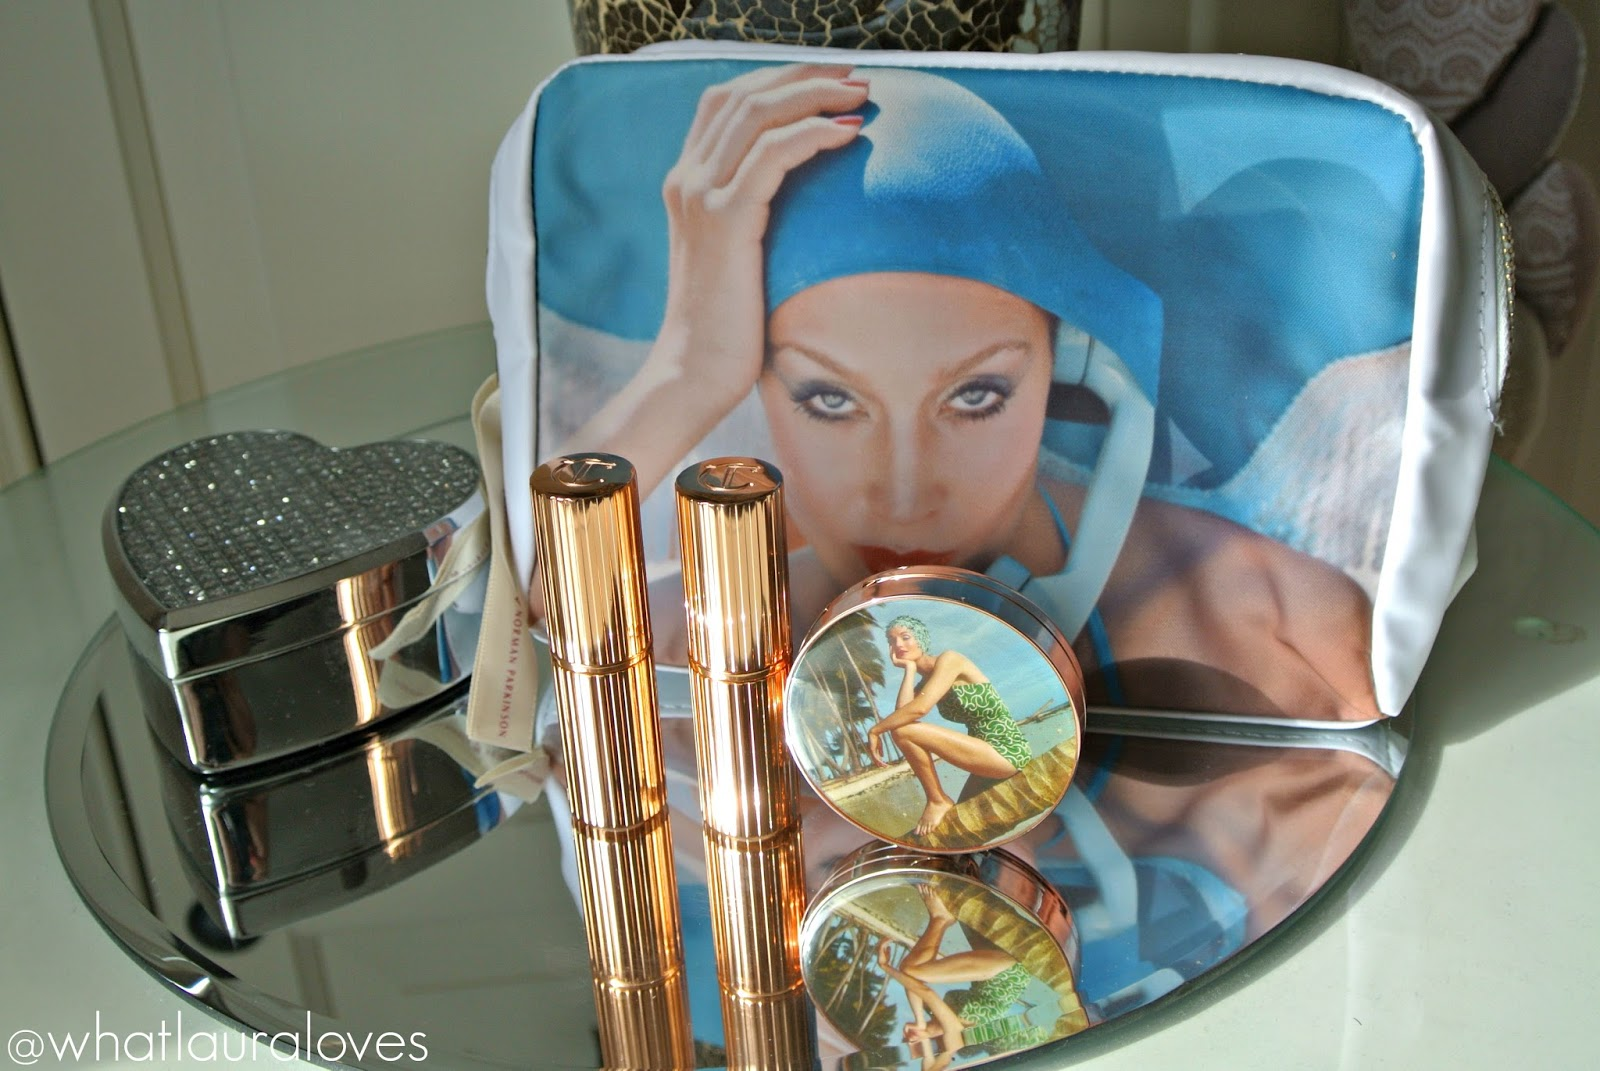 Charlotte Tilbury x Norman Parkinson Collections 'On Call' Makeup Bag, Matte Revolution Lipsticks, Colour of Youth